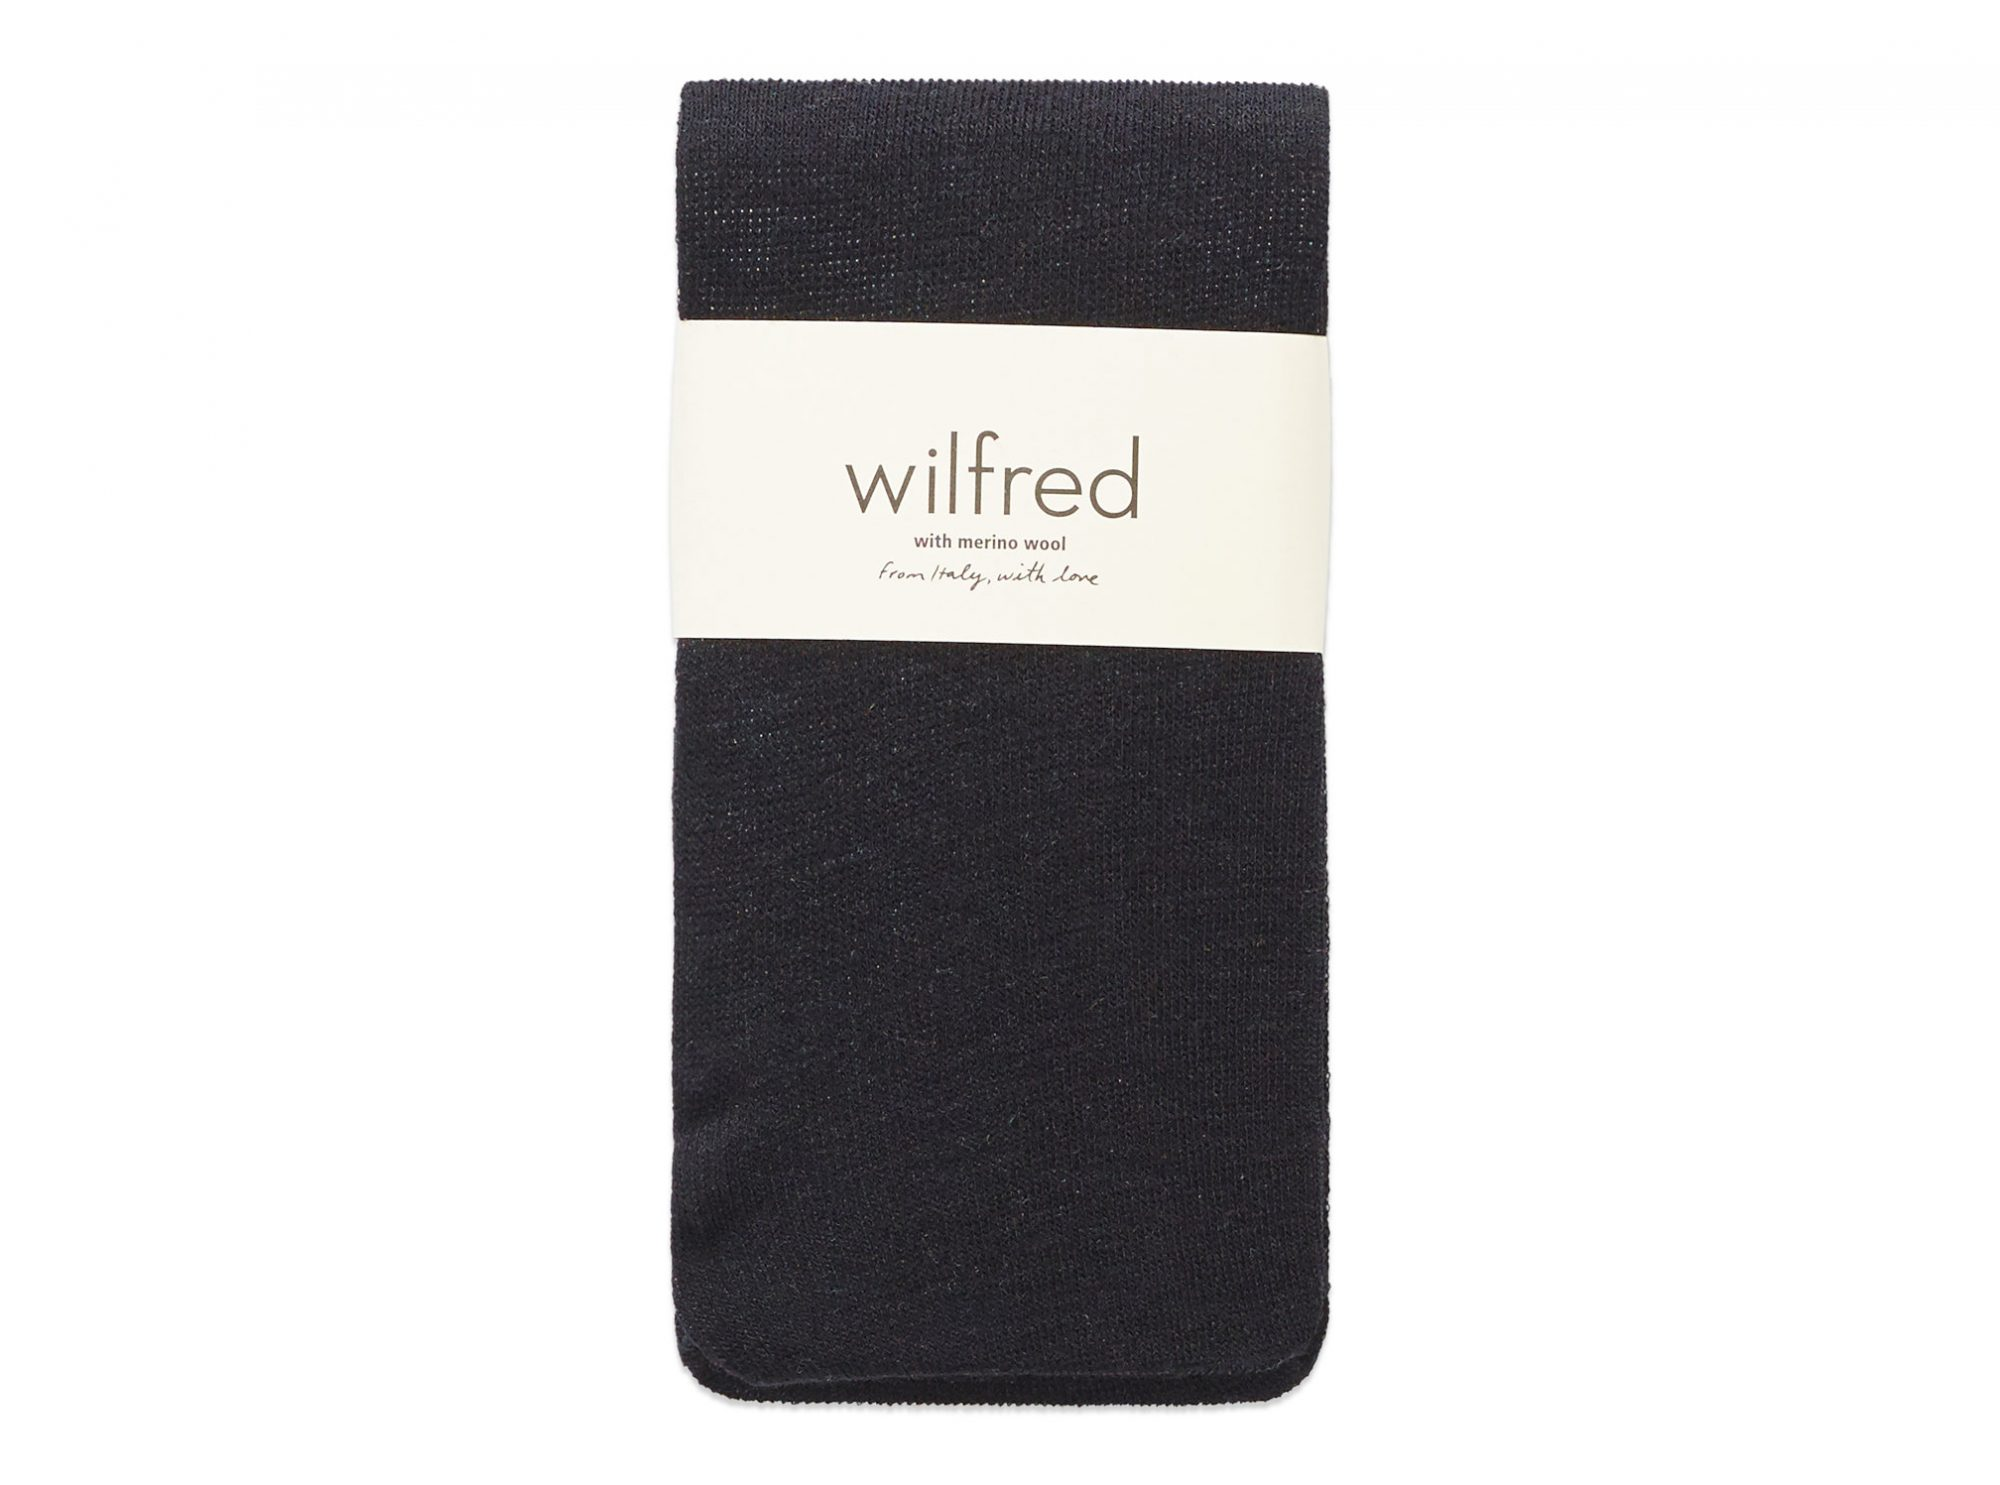 Wilfred Merino Wool Tights